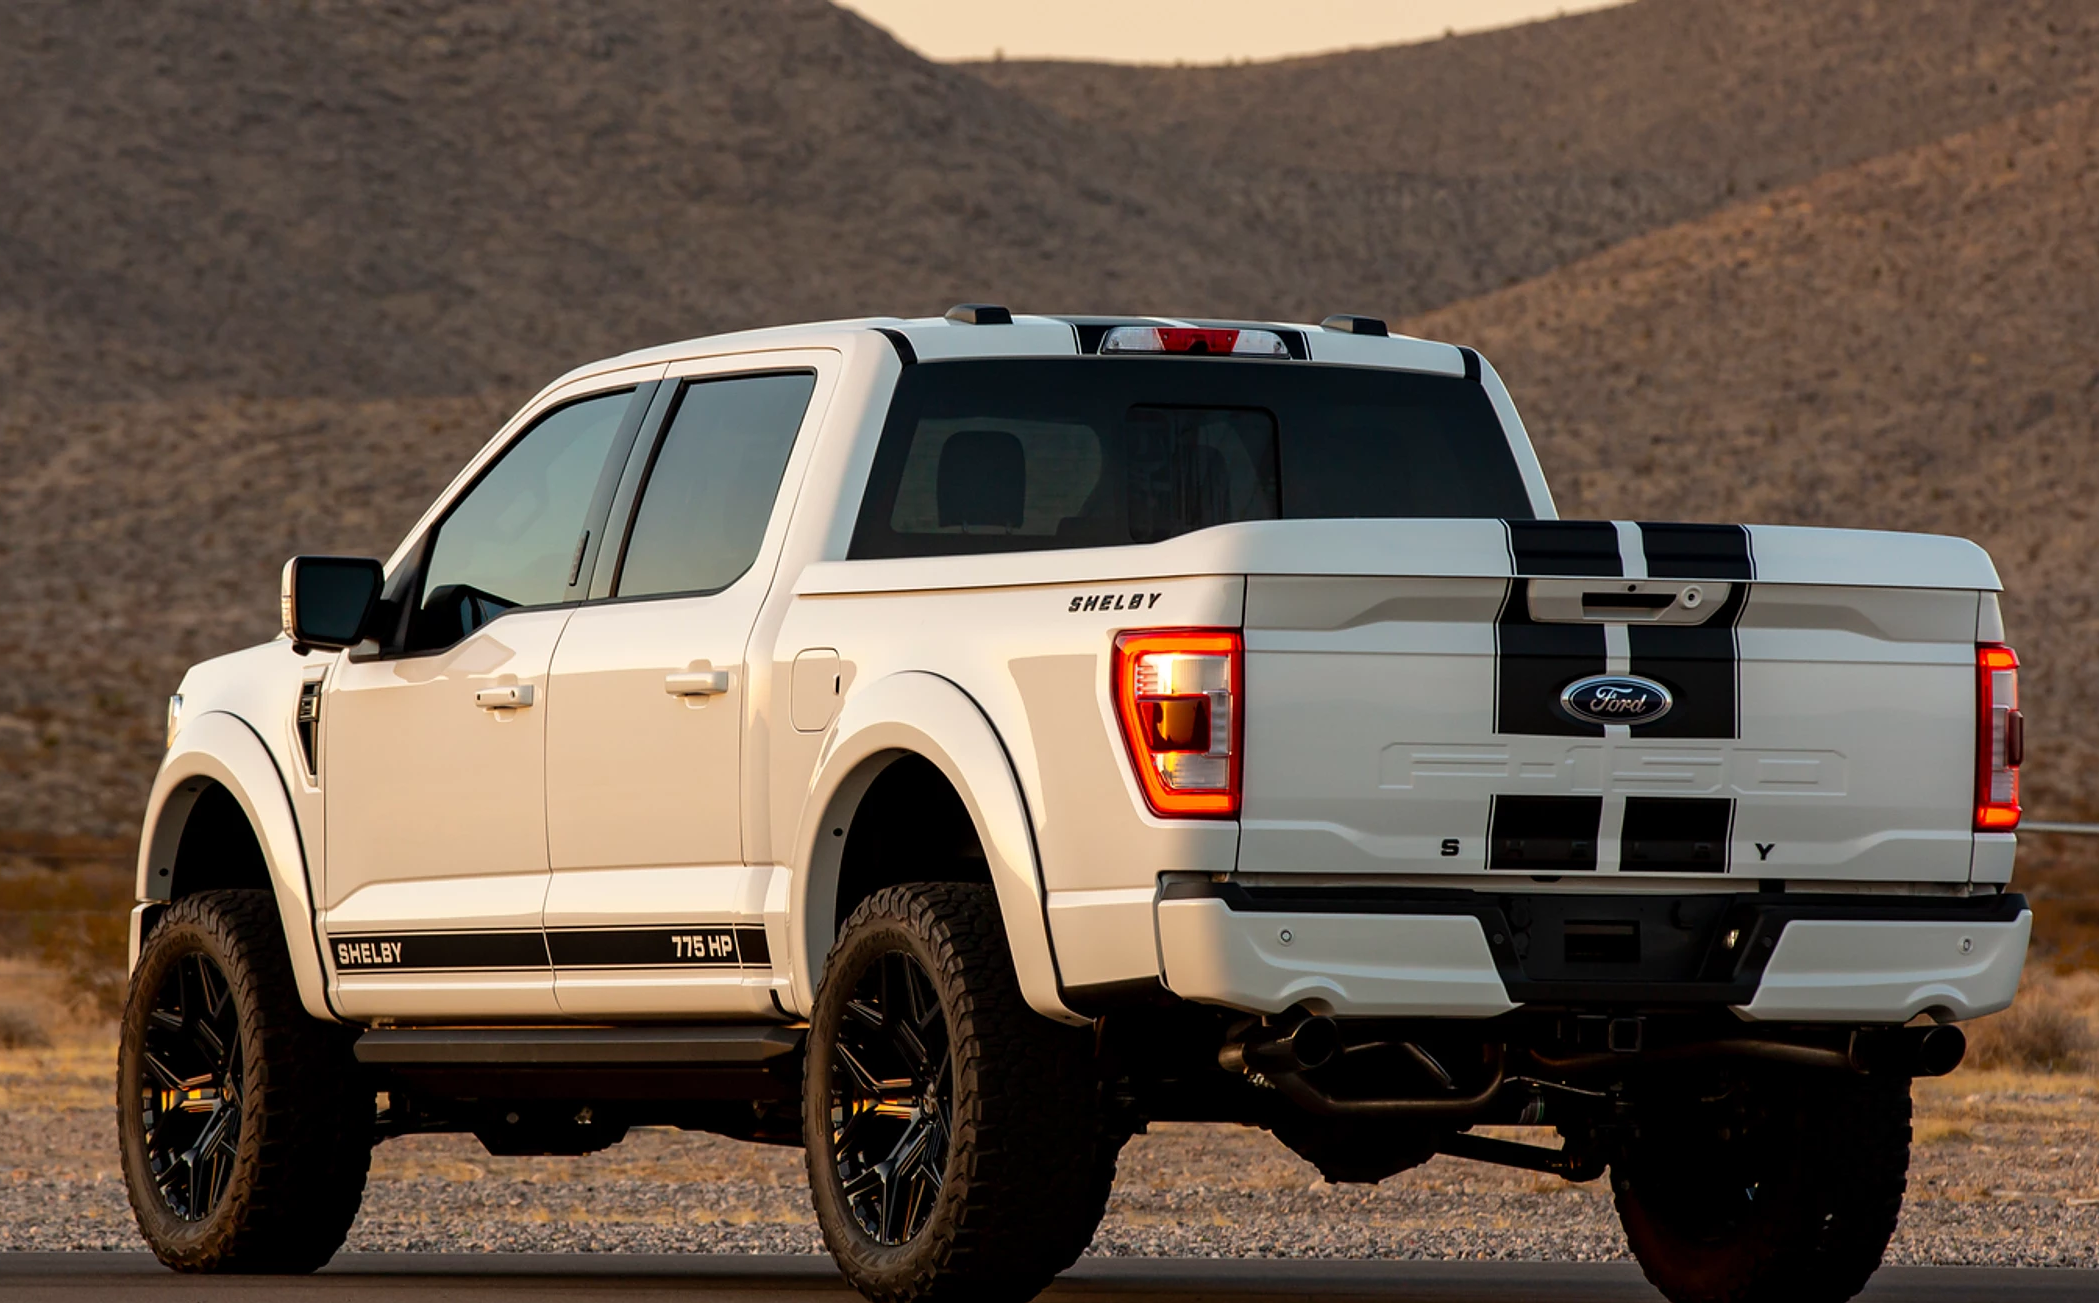 Shelby F150 2021 posteriore